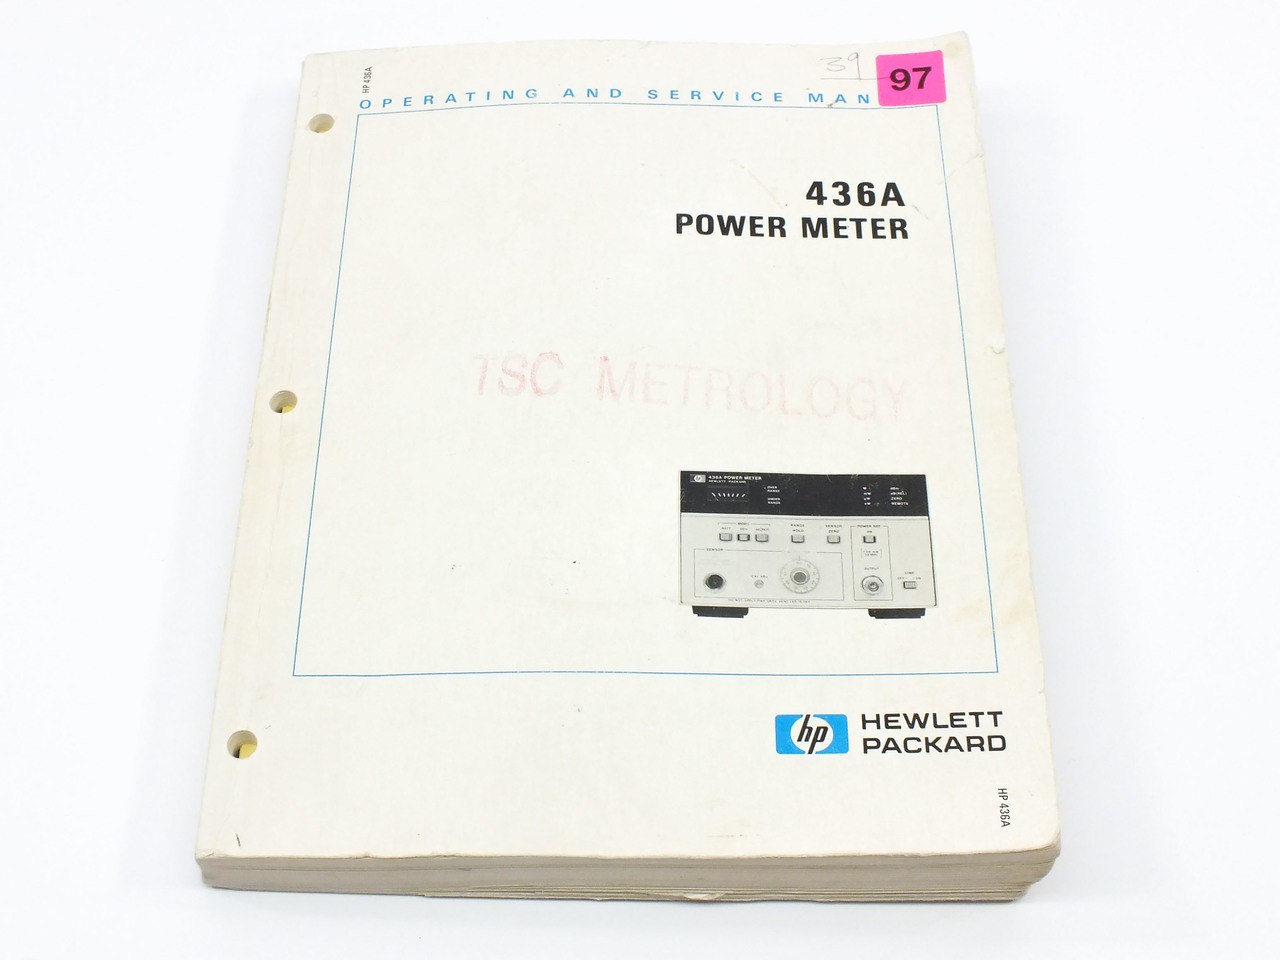 hp 436a power meter operating and service manual recycledgoods com rh recycledgoods com hewlett packard 436a power meter manual HP Power Sensor